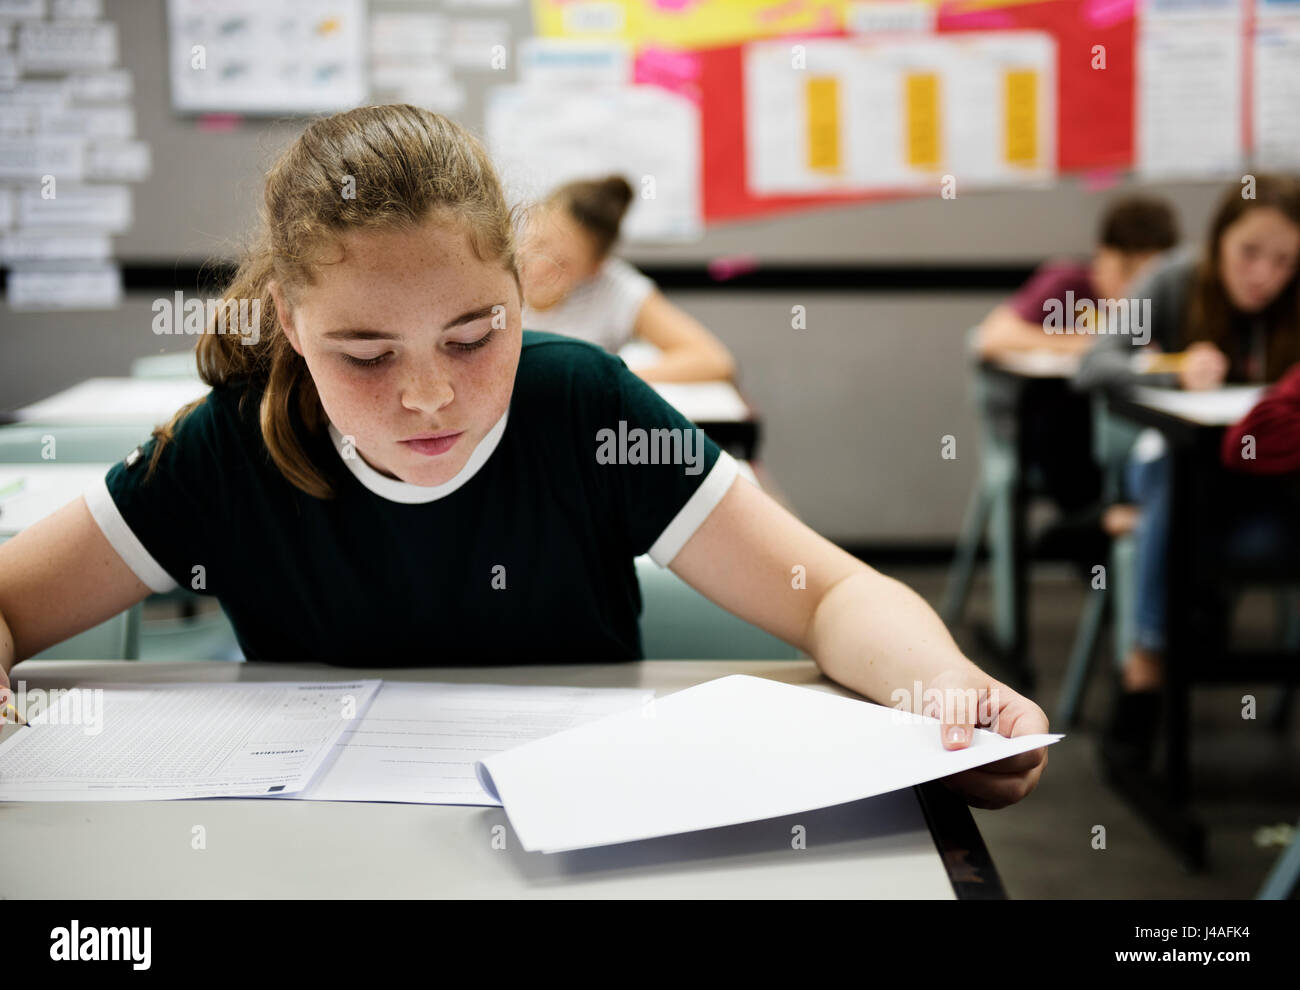 Students doing exam in classroom Stock Photo: 140373384 - Alamy